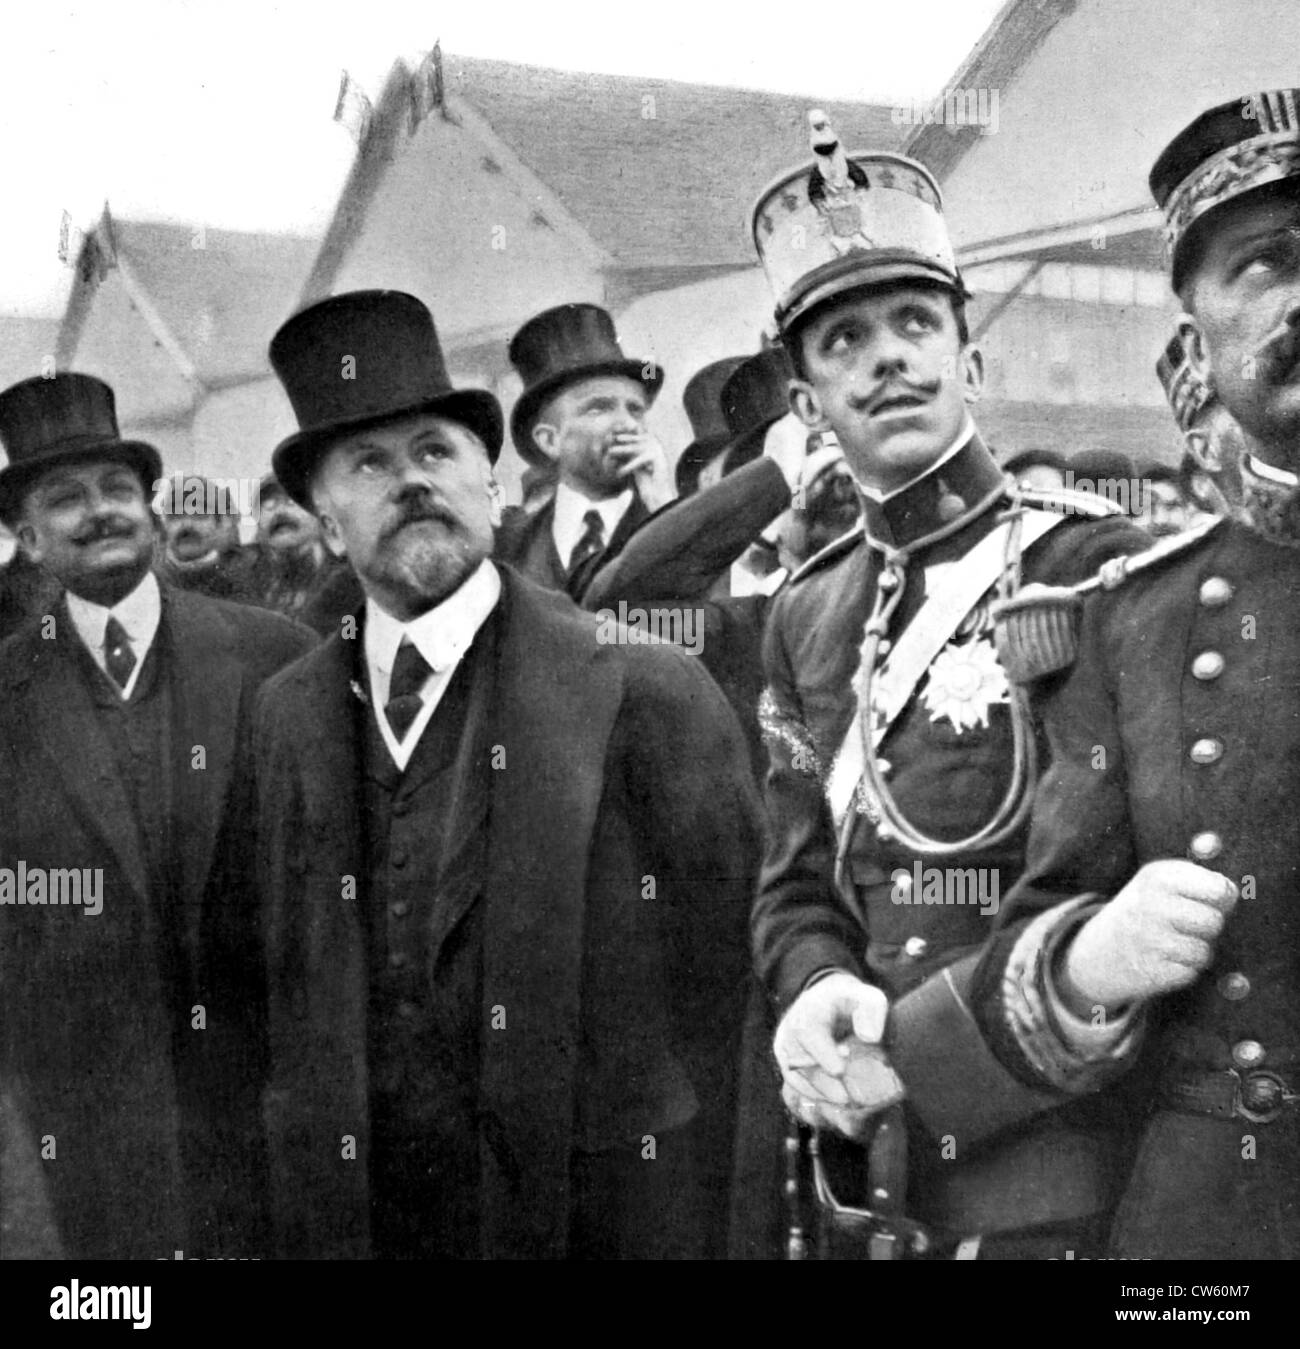 Visit of the King of Spain, Alfonso XIII, accompanied by French President Poincaré, at the Buc aviation camp - Stock Image